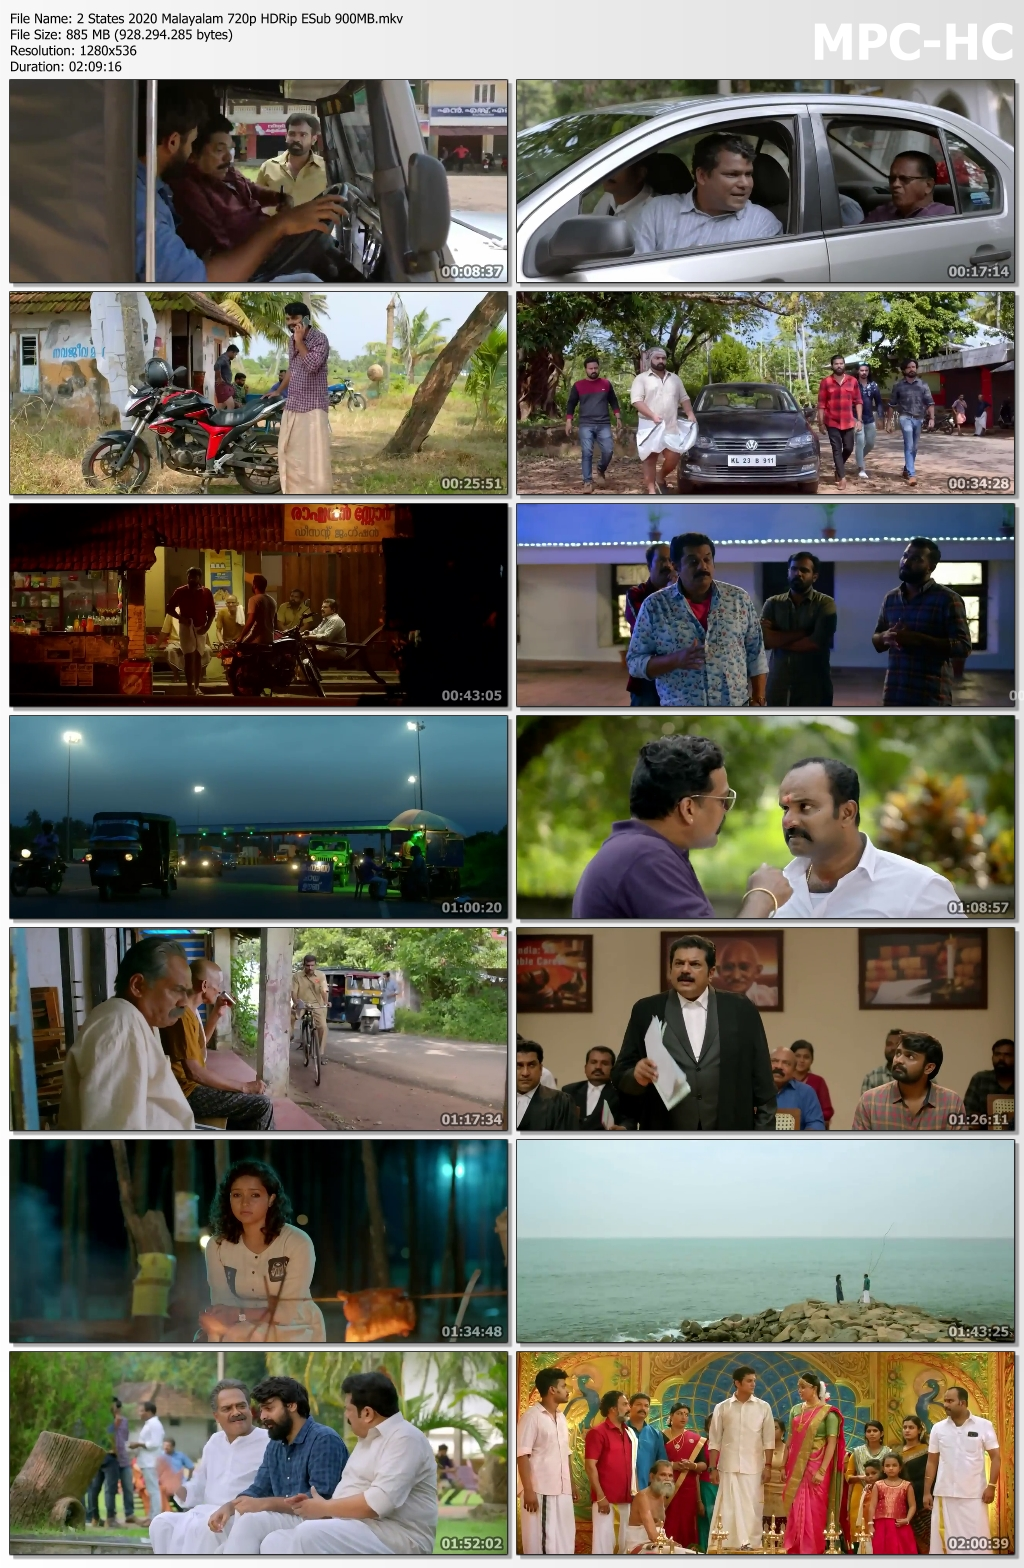 2-States-2020-Malayalam-720p-HDRip-ESub-900-MB-mkv-thumbs